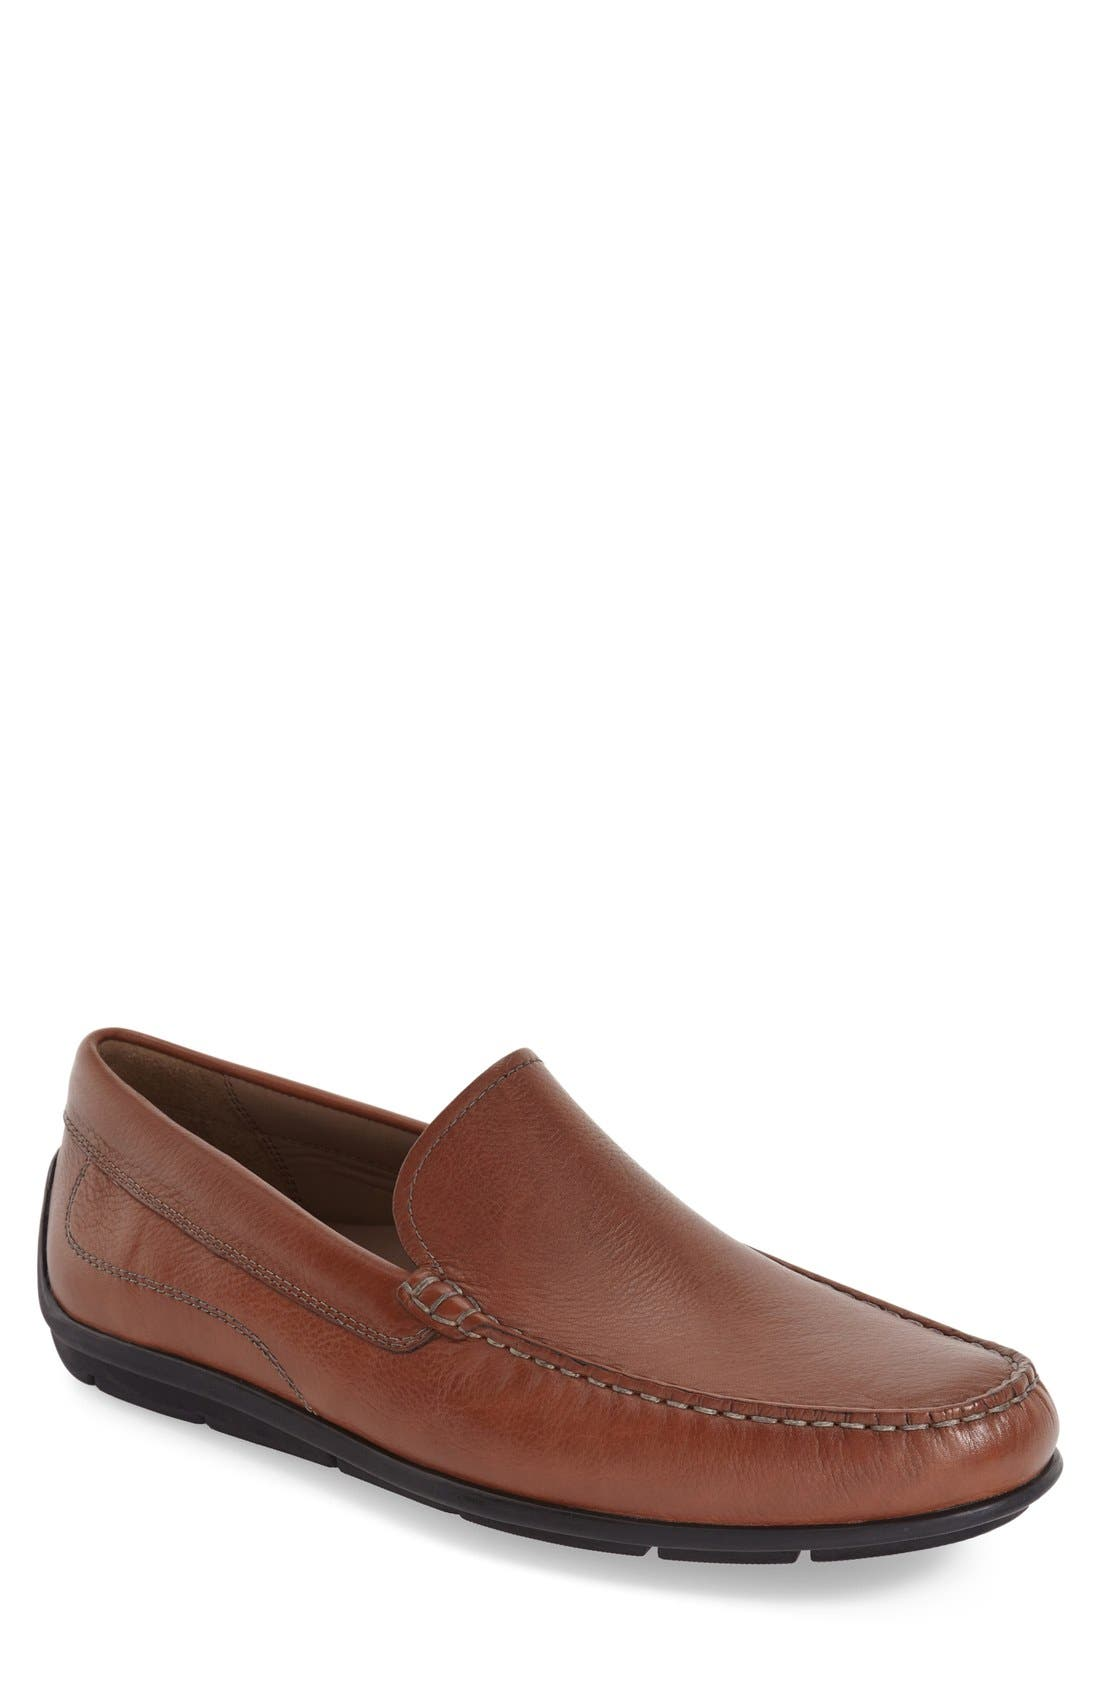 Alternate Image 1 Selected - ECCO 'Classic Moc' Slip-On (Men)